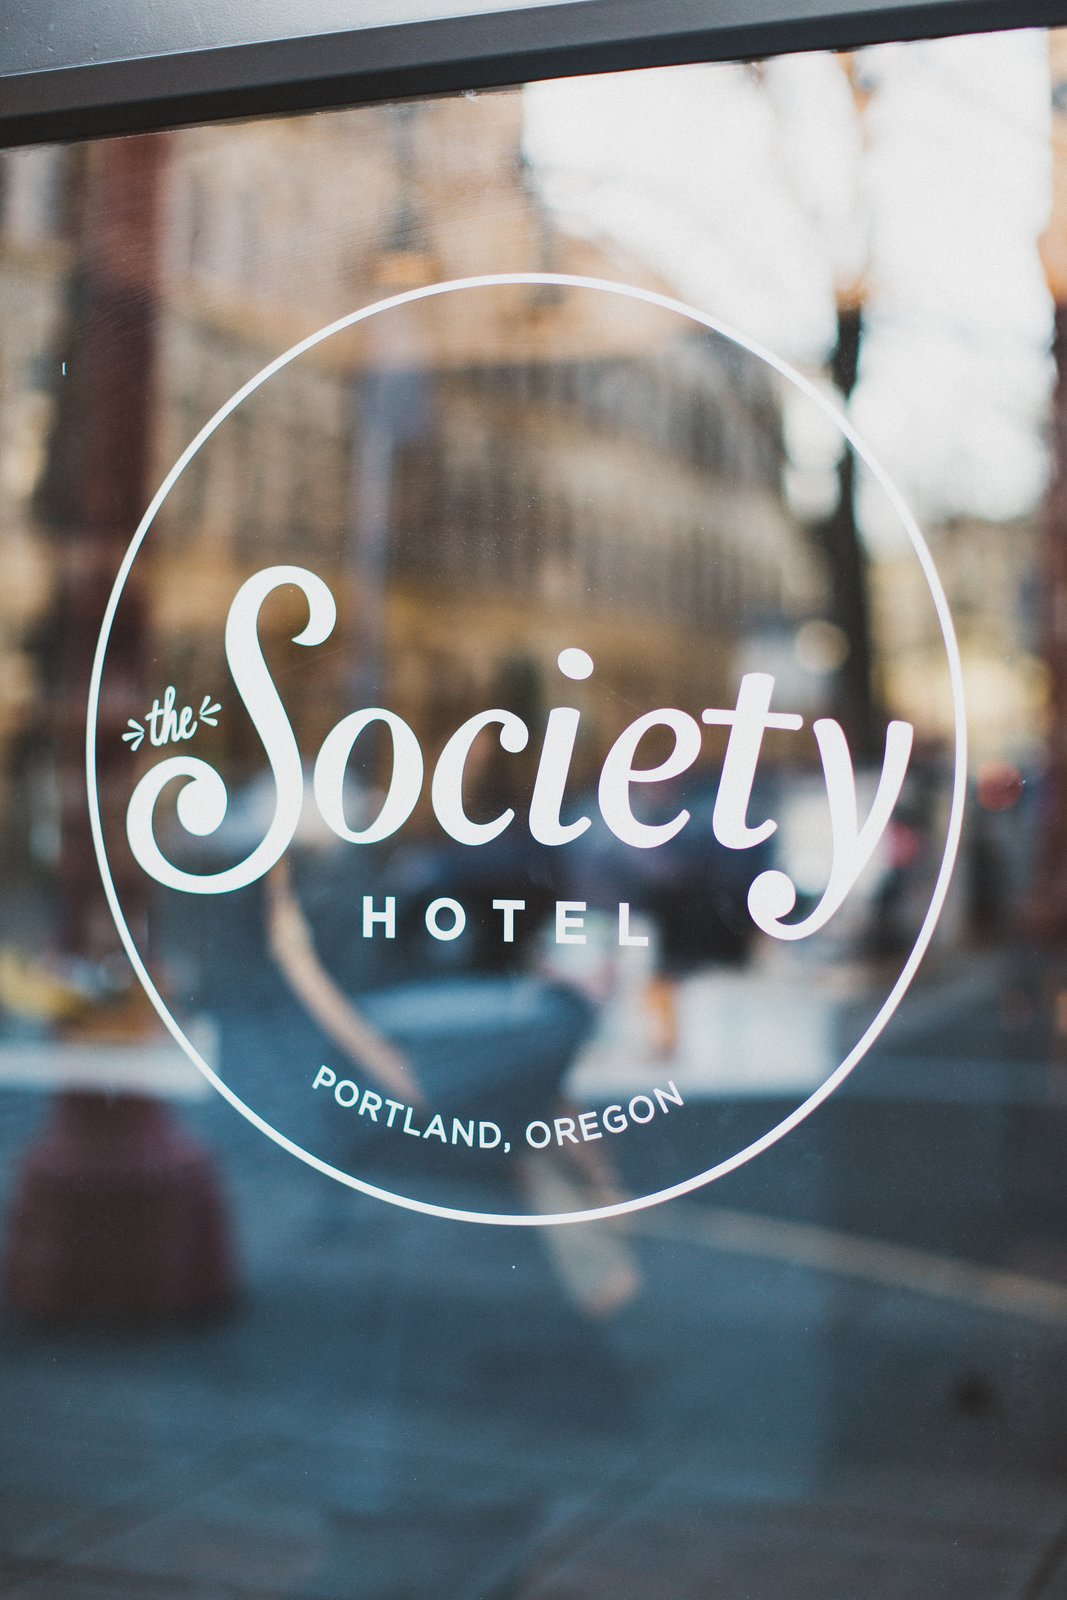 Windows Window graphics provide unobtrusive and elegant signage on the exterior glazing of the historic facade.  The Society Hotel from A Chic Portland Hotel Offers Lodging As Affordable as $35 a Night